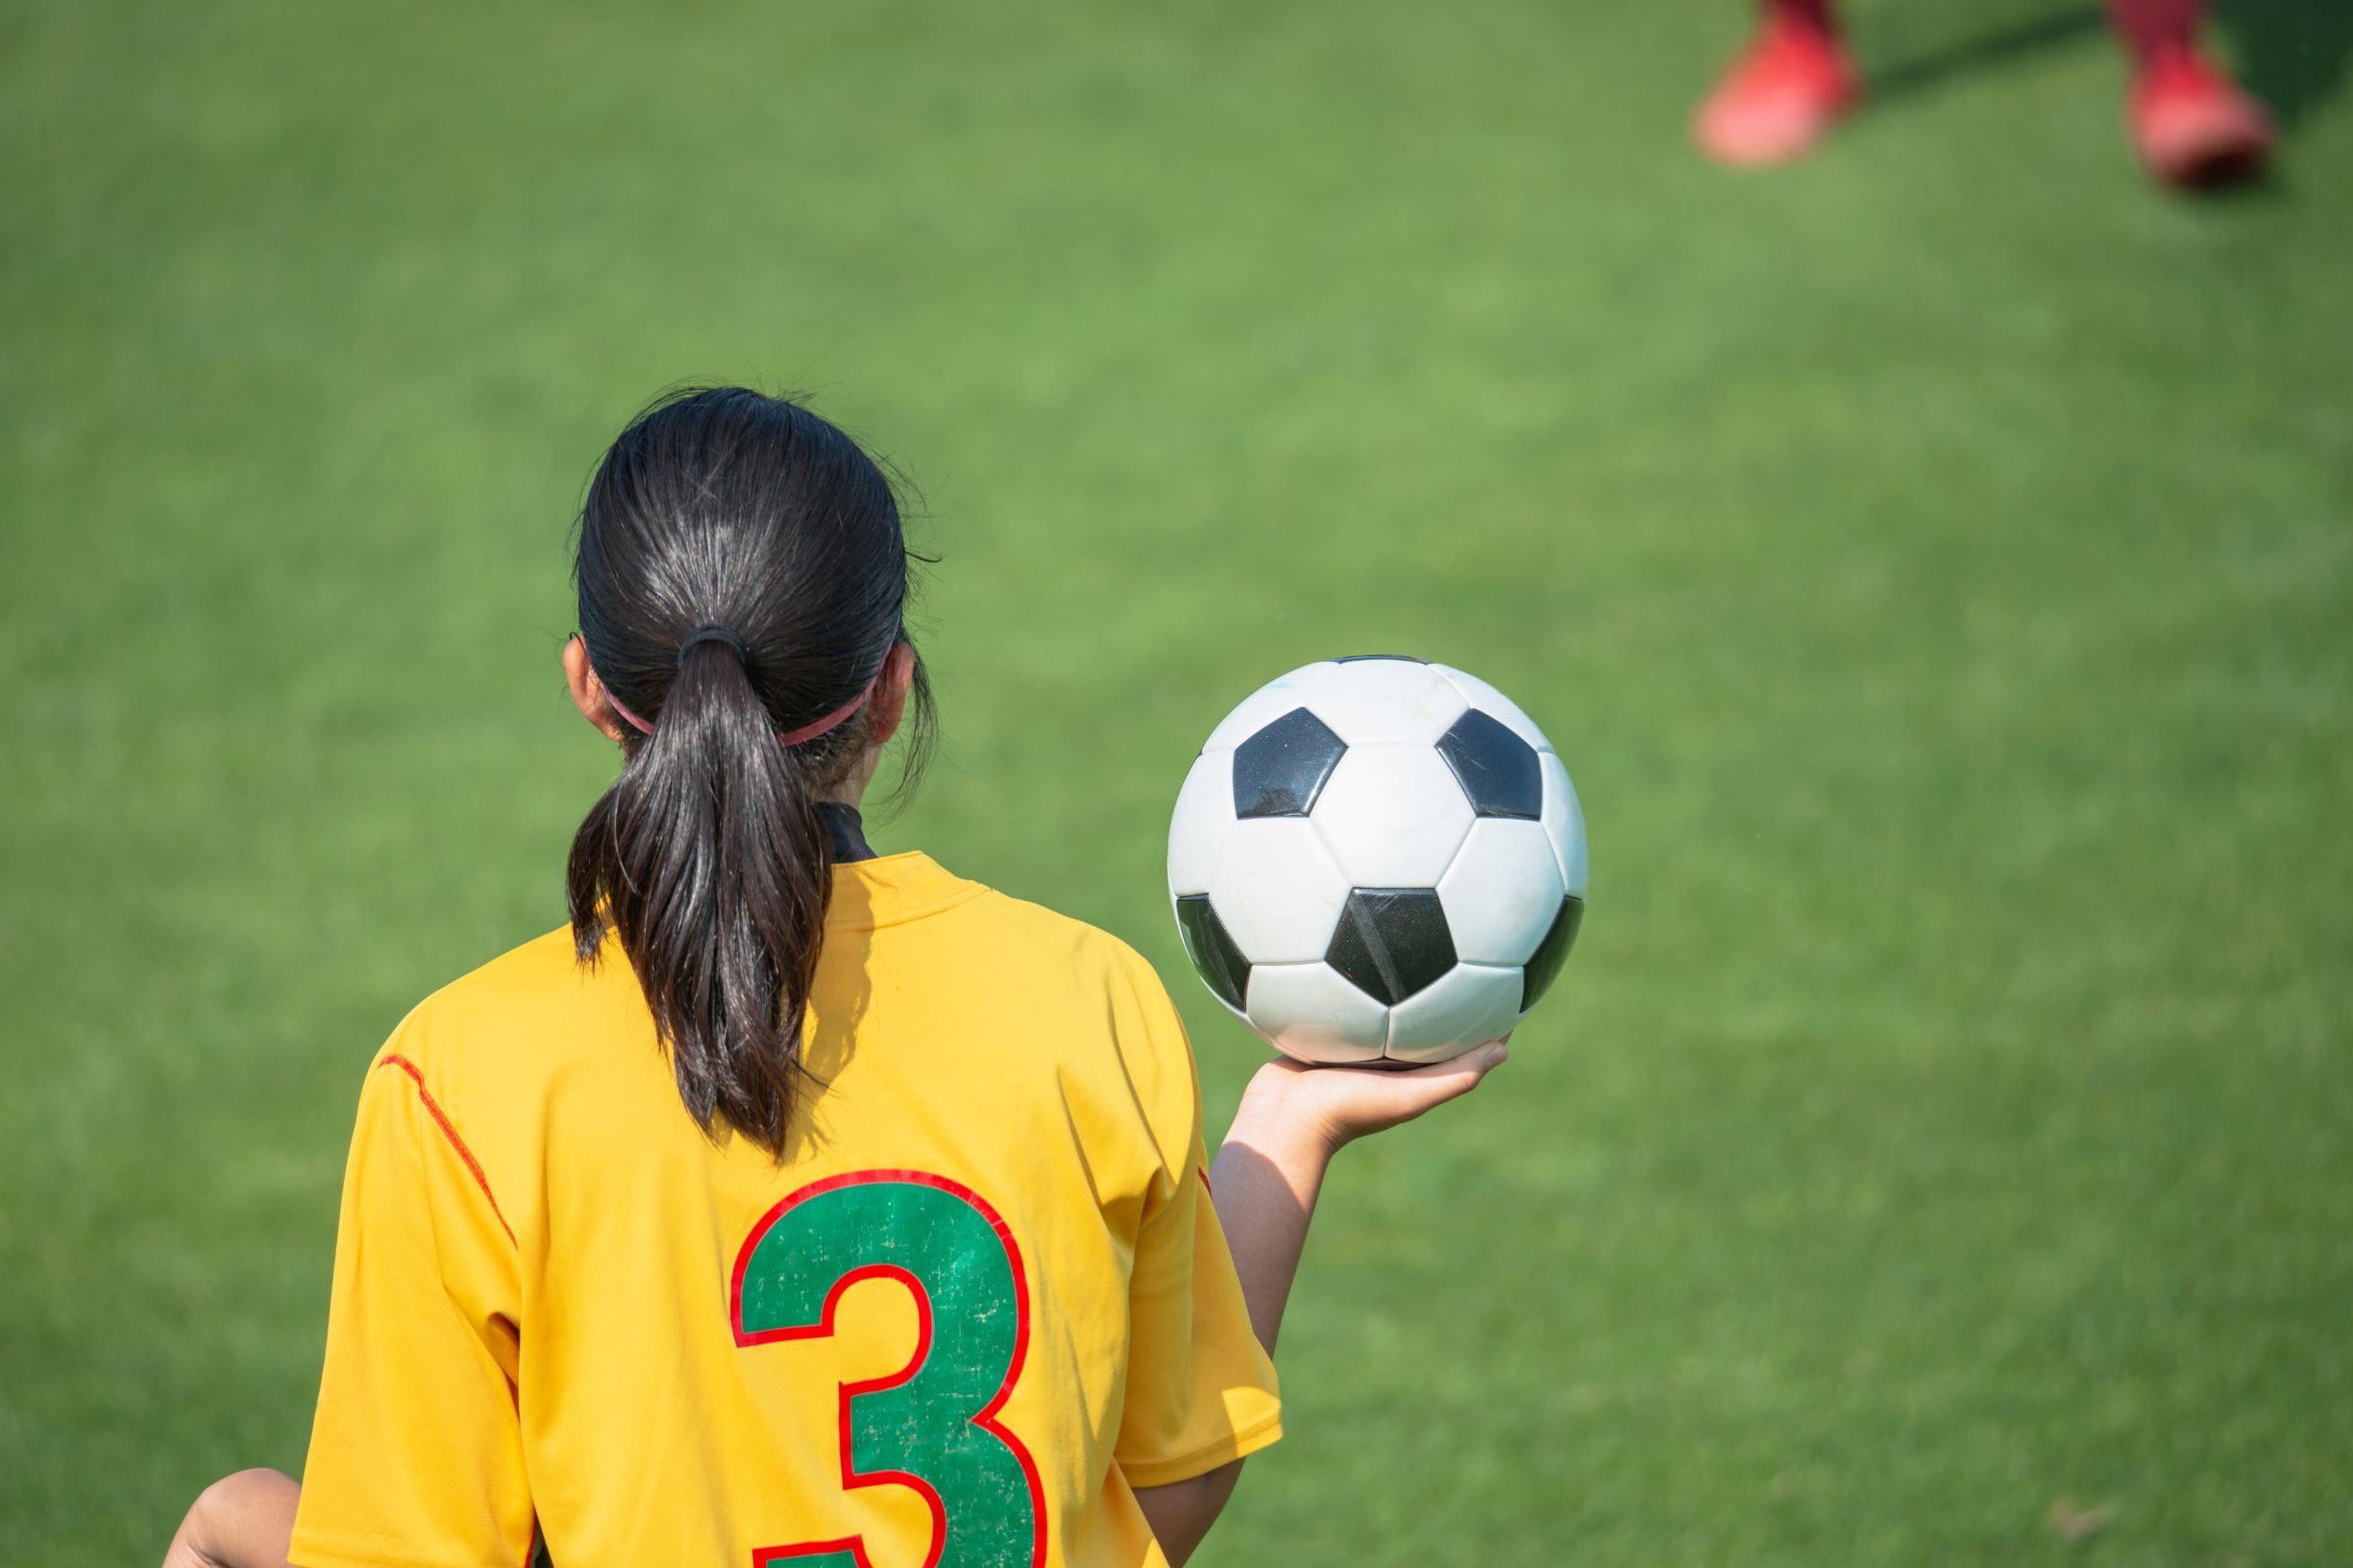 Rear view of a young girl holding a soccer ball on sidelines during a soccer match, wearing a yellow jersey.